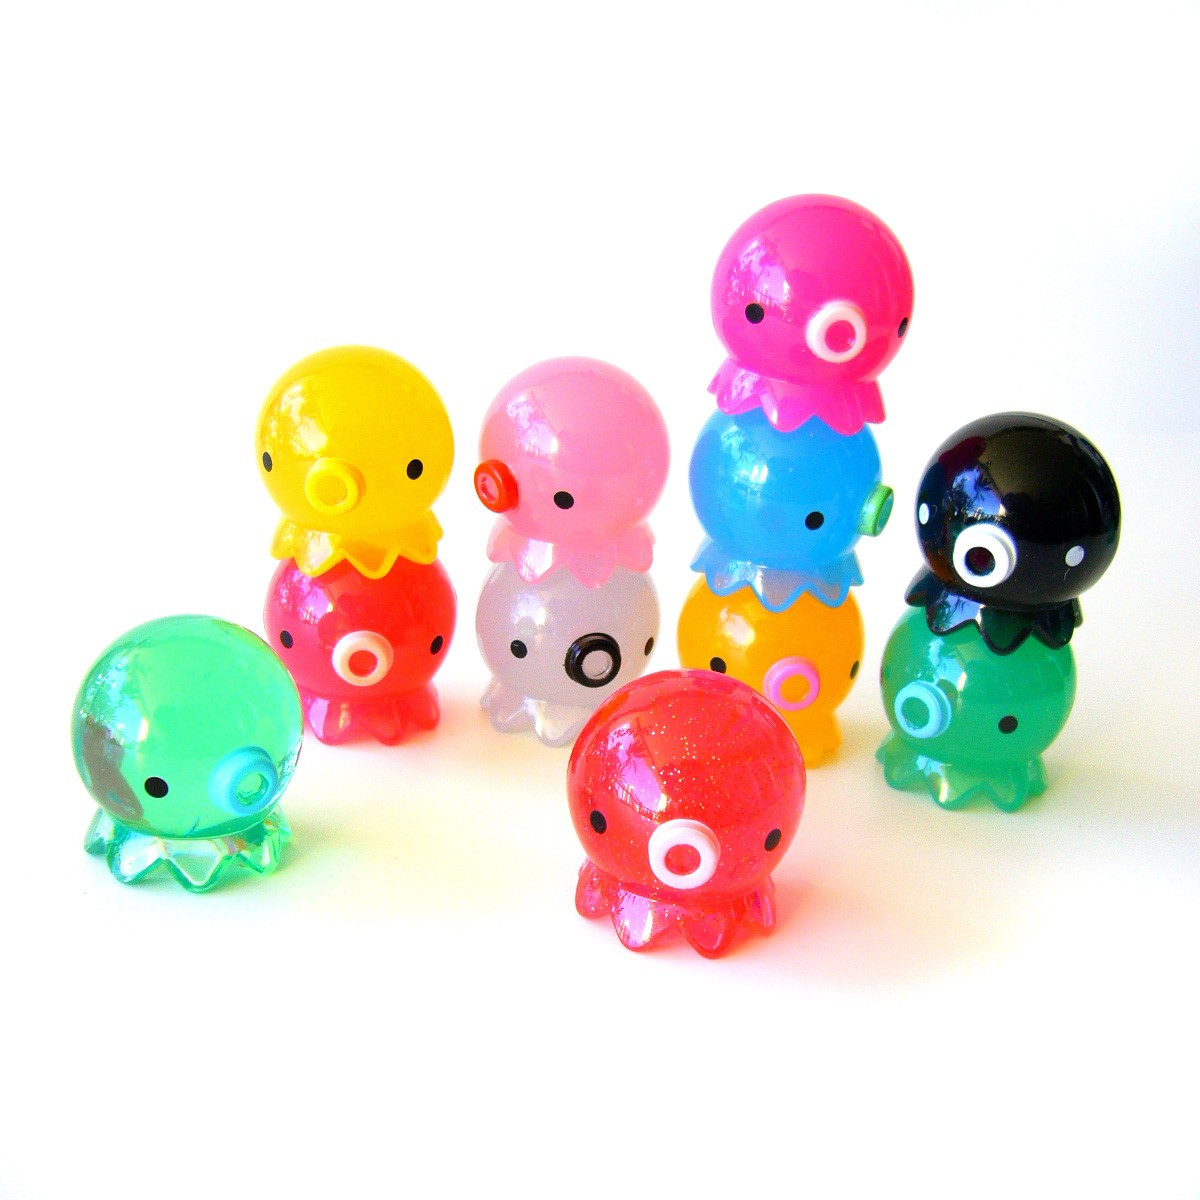 Japanese Kawaii Octopus Toy : Berrysprite new takochu